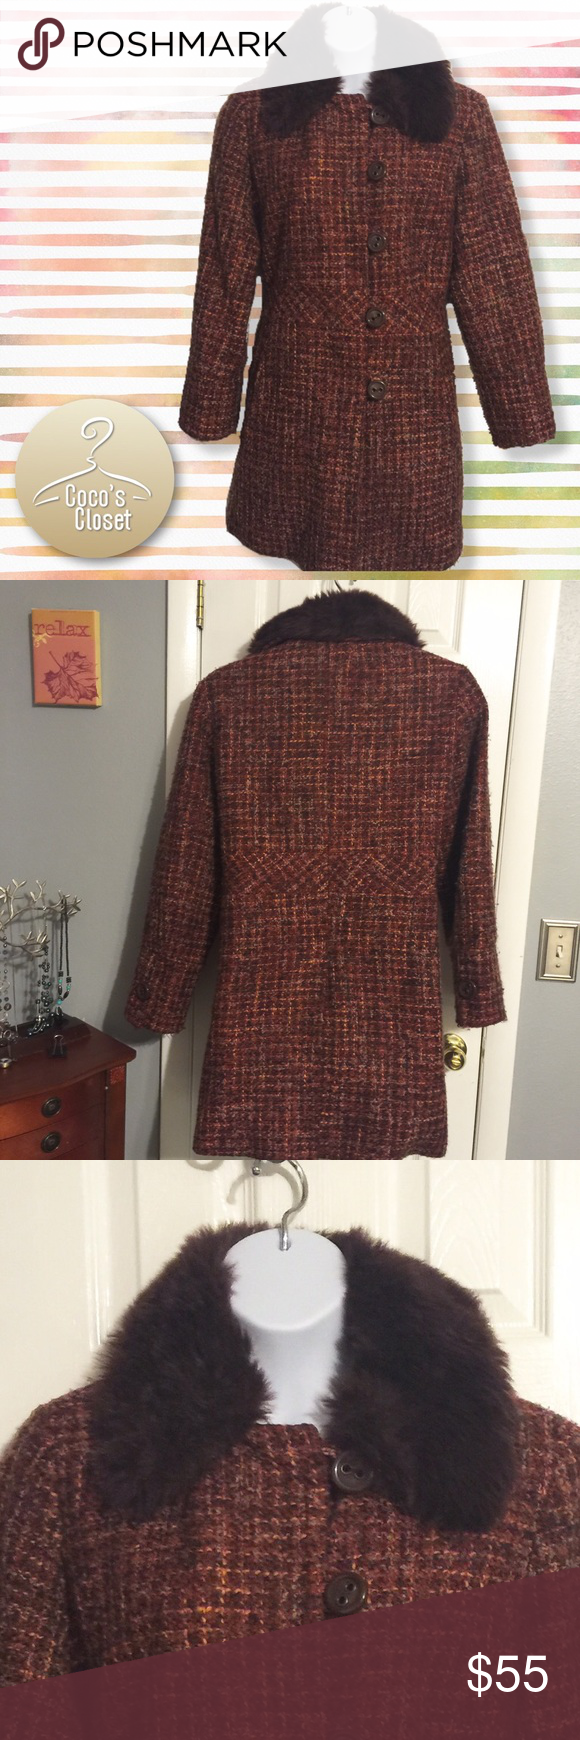 Lane Bryant orange/purple plaid coat 14/16 I love this coat, but it doesn't fit me so it must go. It has a detachable faux fur collar. It's warm and has a back vent and fitted waist. Size 14/16. Lane Bryant Jackets & Coats